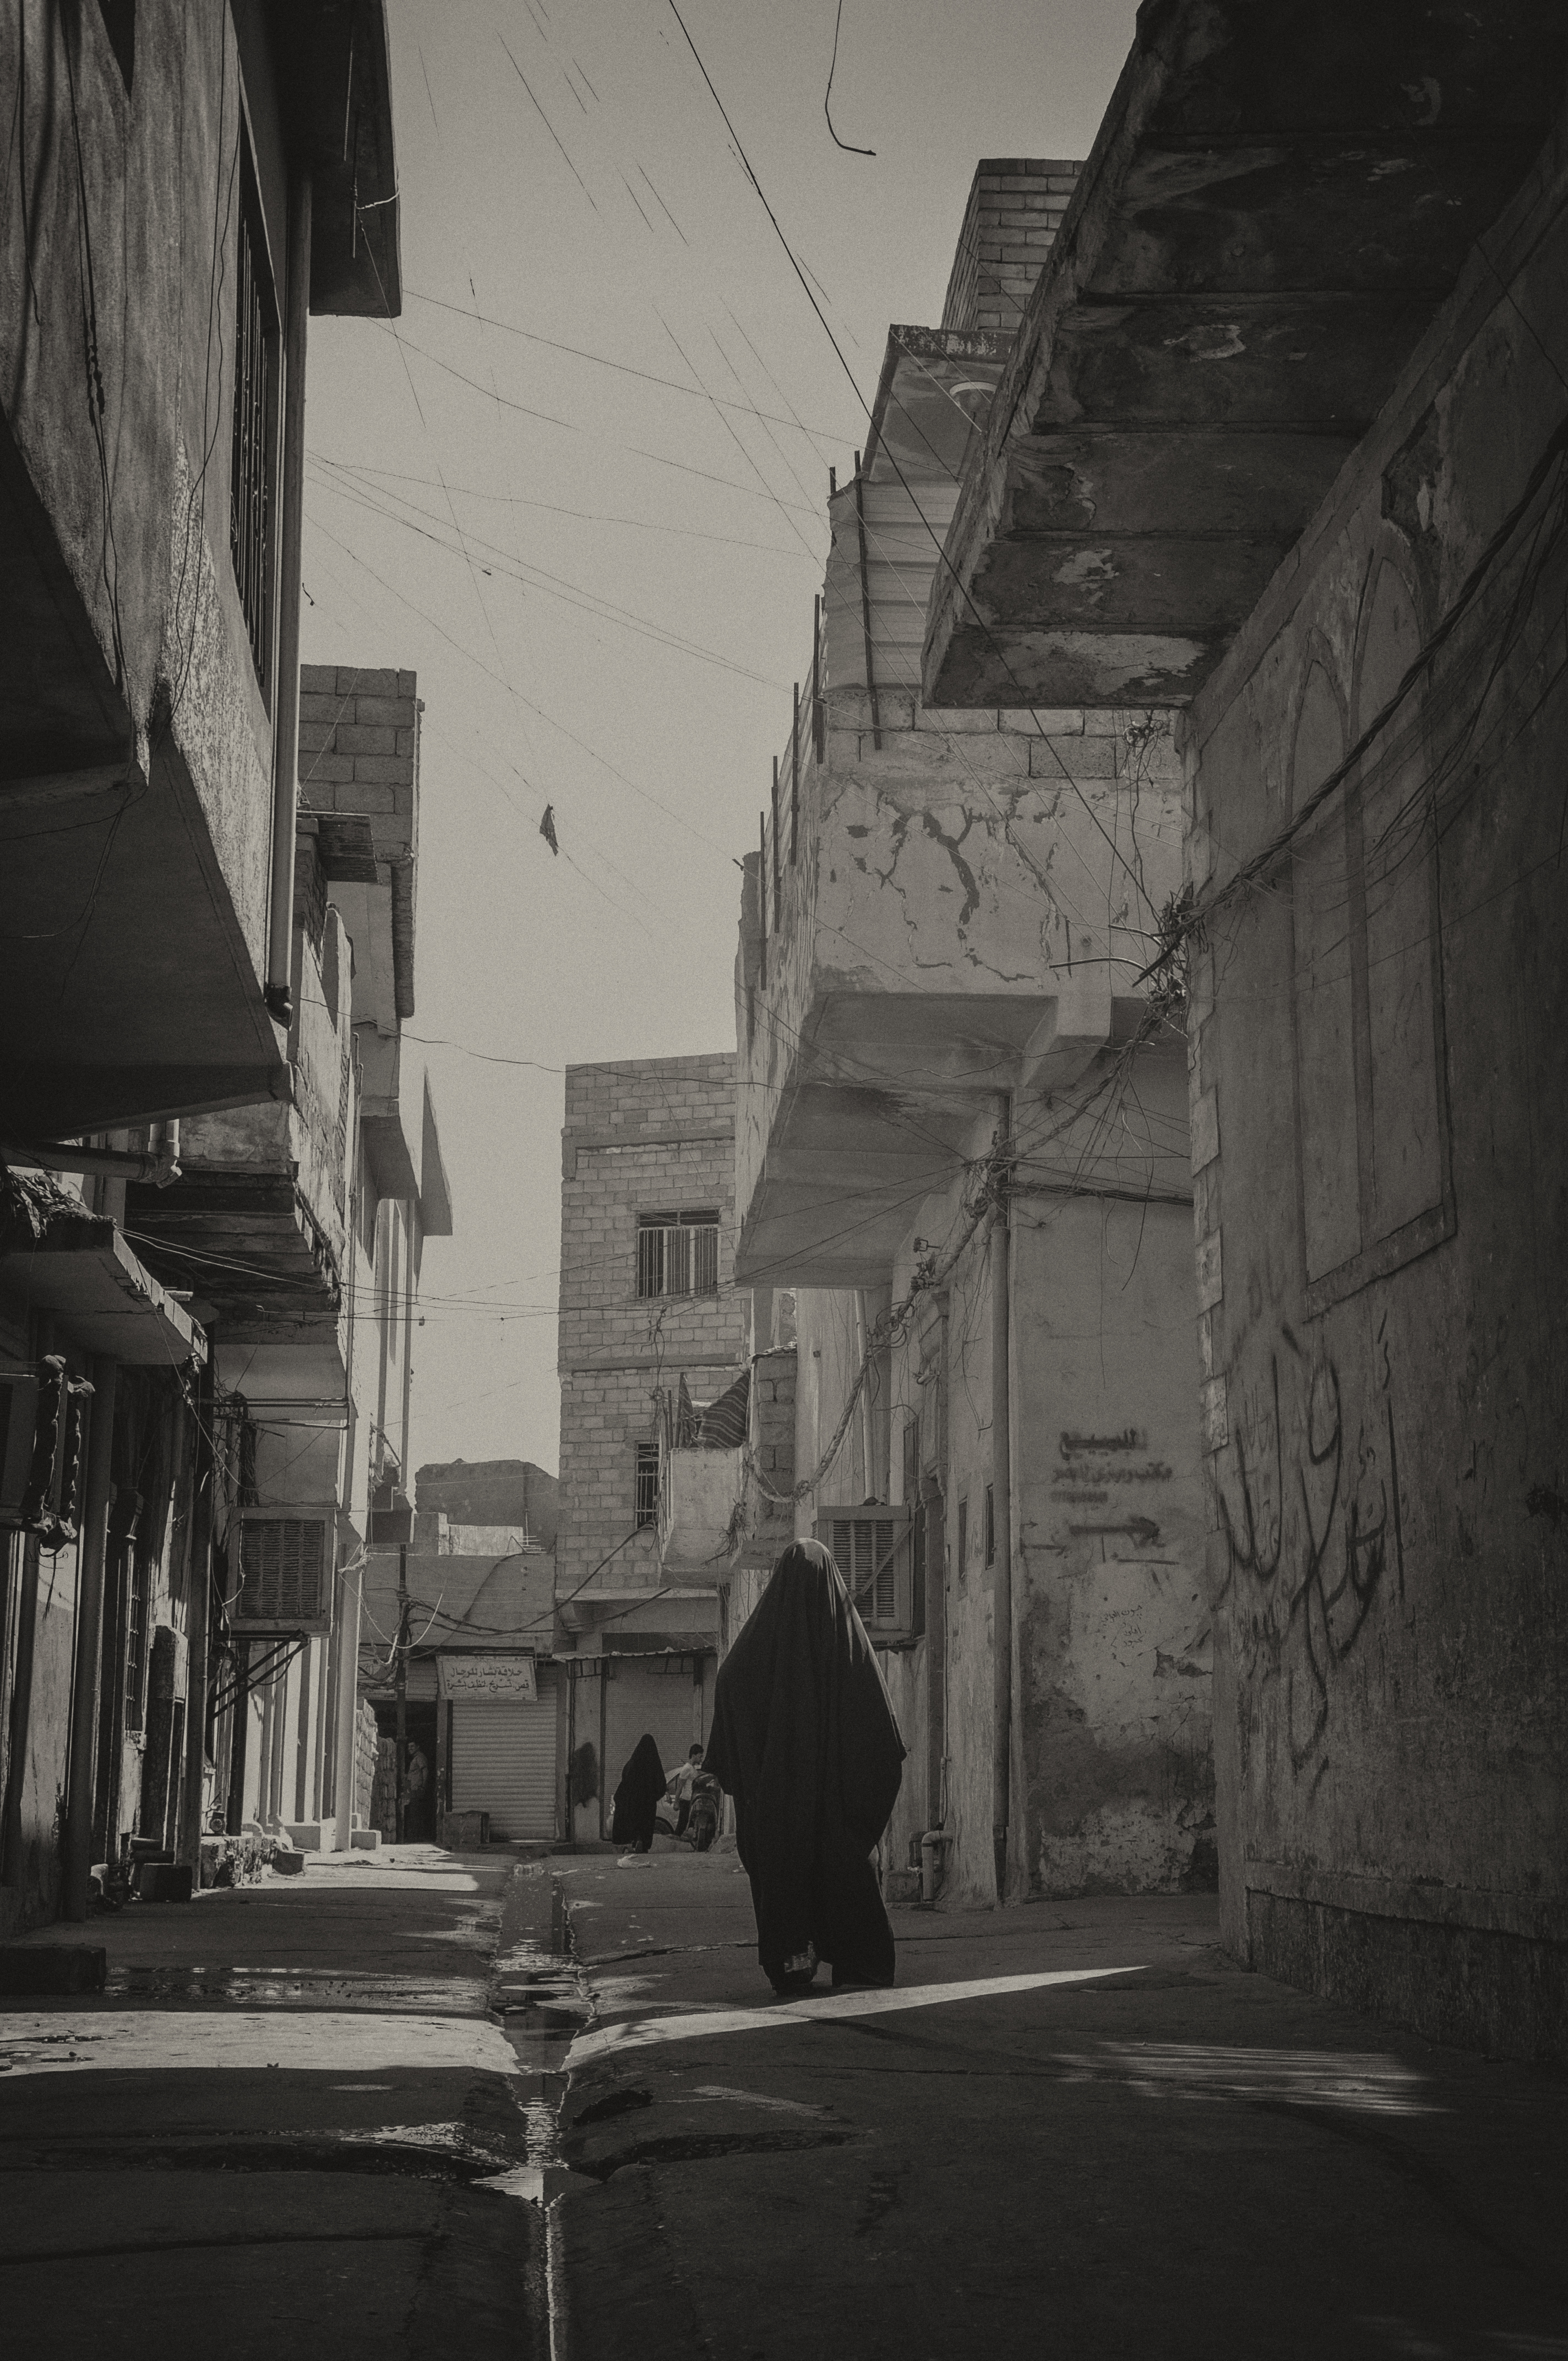 In the streets of Mosul, Iraq, in 2013. Photo by: Zaid Alobayde. Photo.